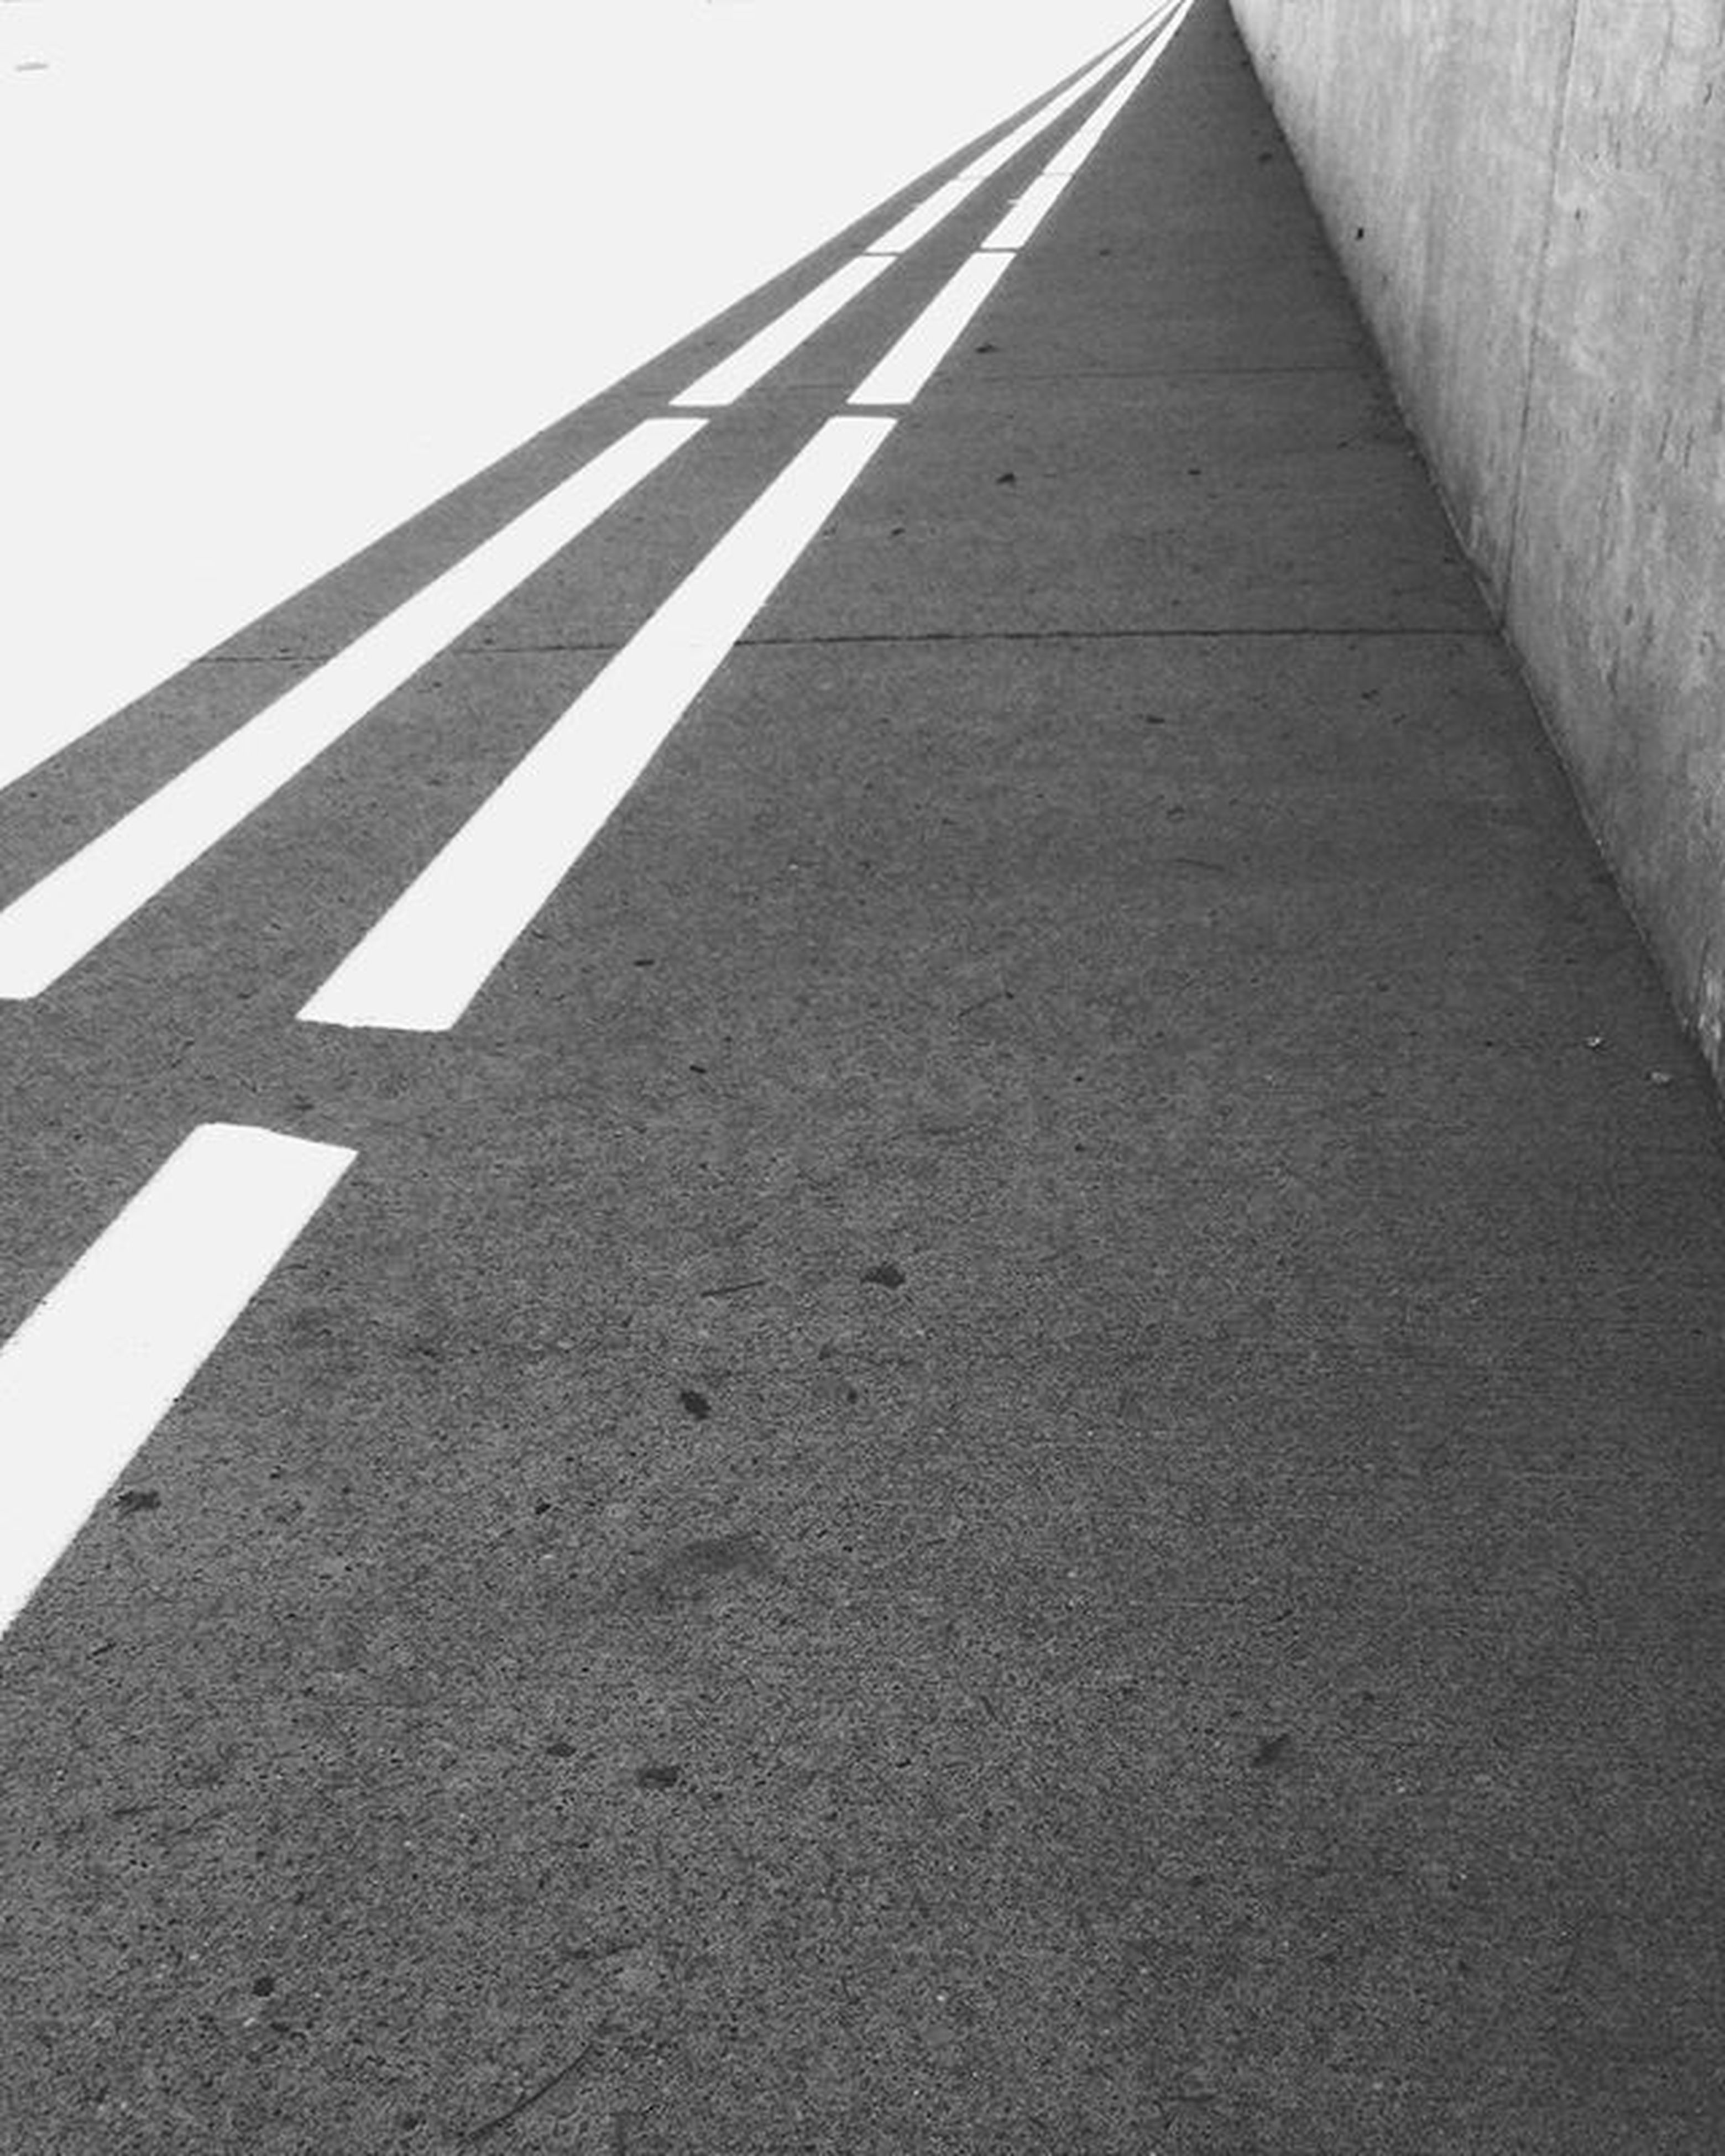 the way forward, road marking, diminishing perspective, built structure, architecture, transportation, road, asphalt, vanishing point, no people, outdoors, low angle view, day, guidance, street, sunlight, shadow, surface level, empty, direction